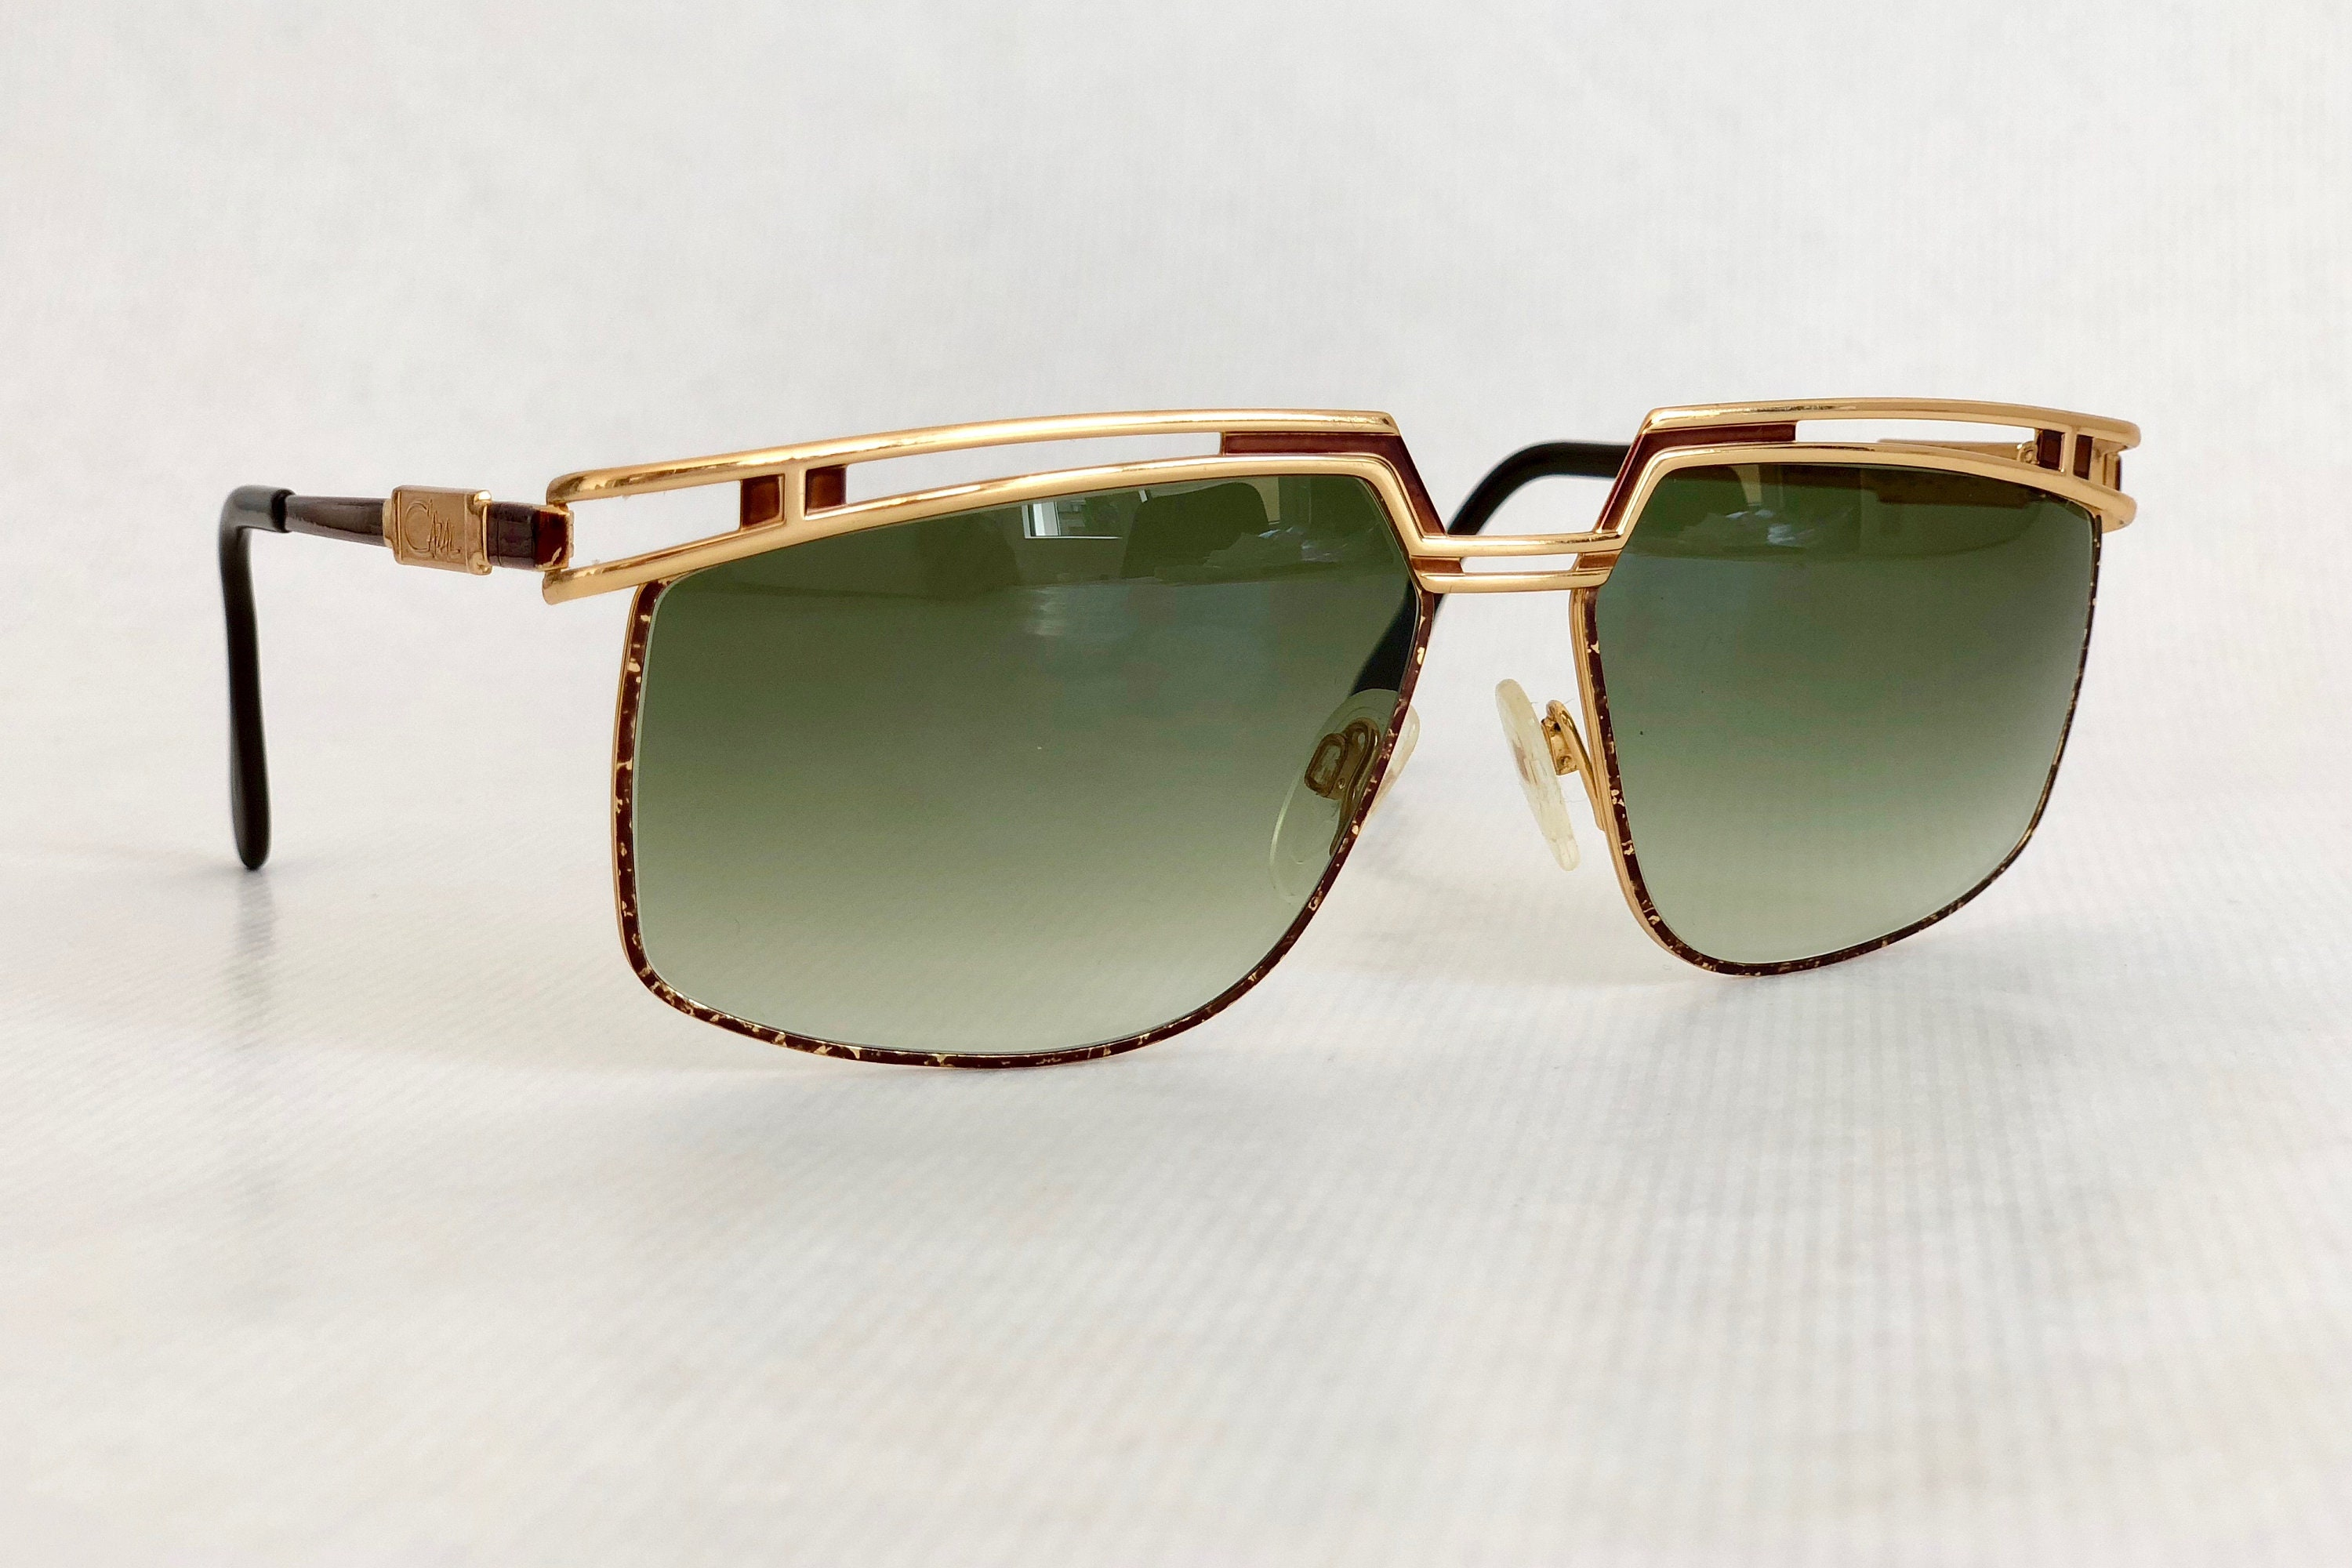 77738b1065e1 Cazal Mod 957 Col 33 Vintage Sunglasses New Unworn Deadstock. gallery photo  ...